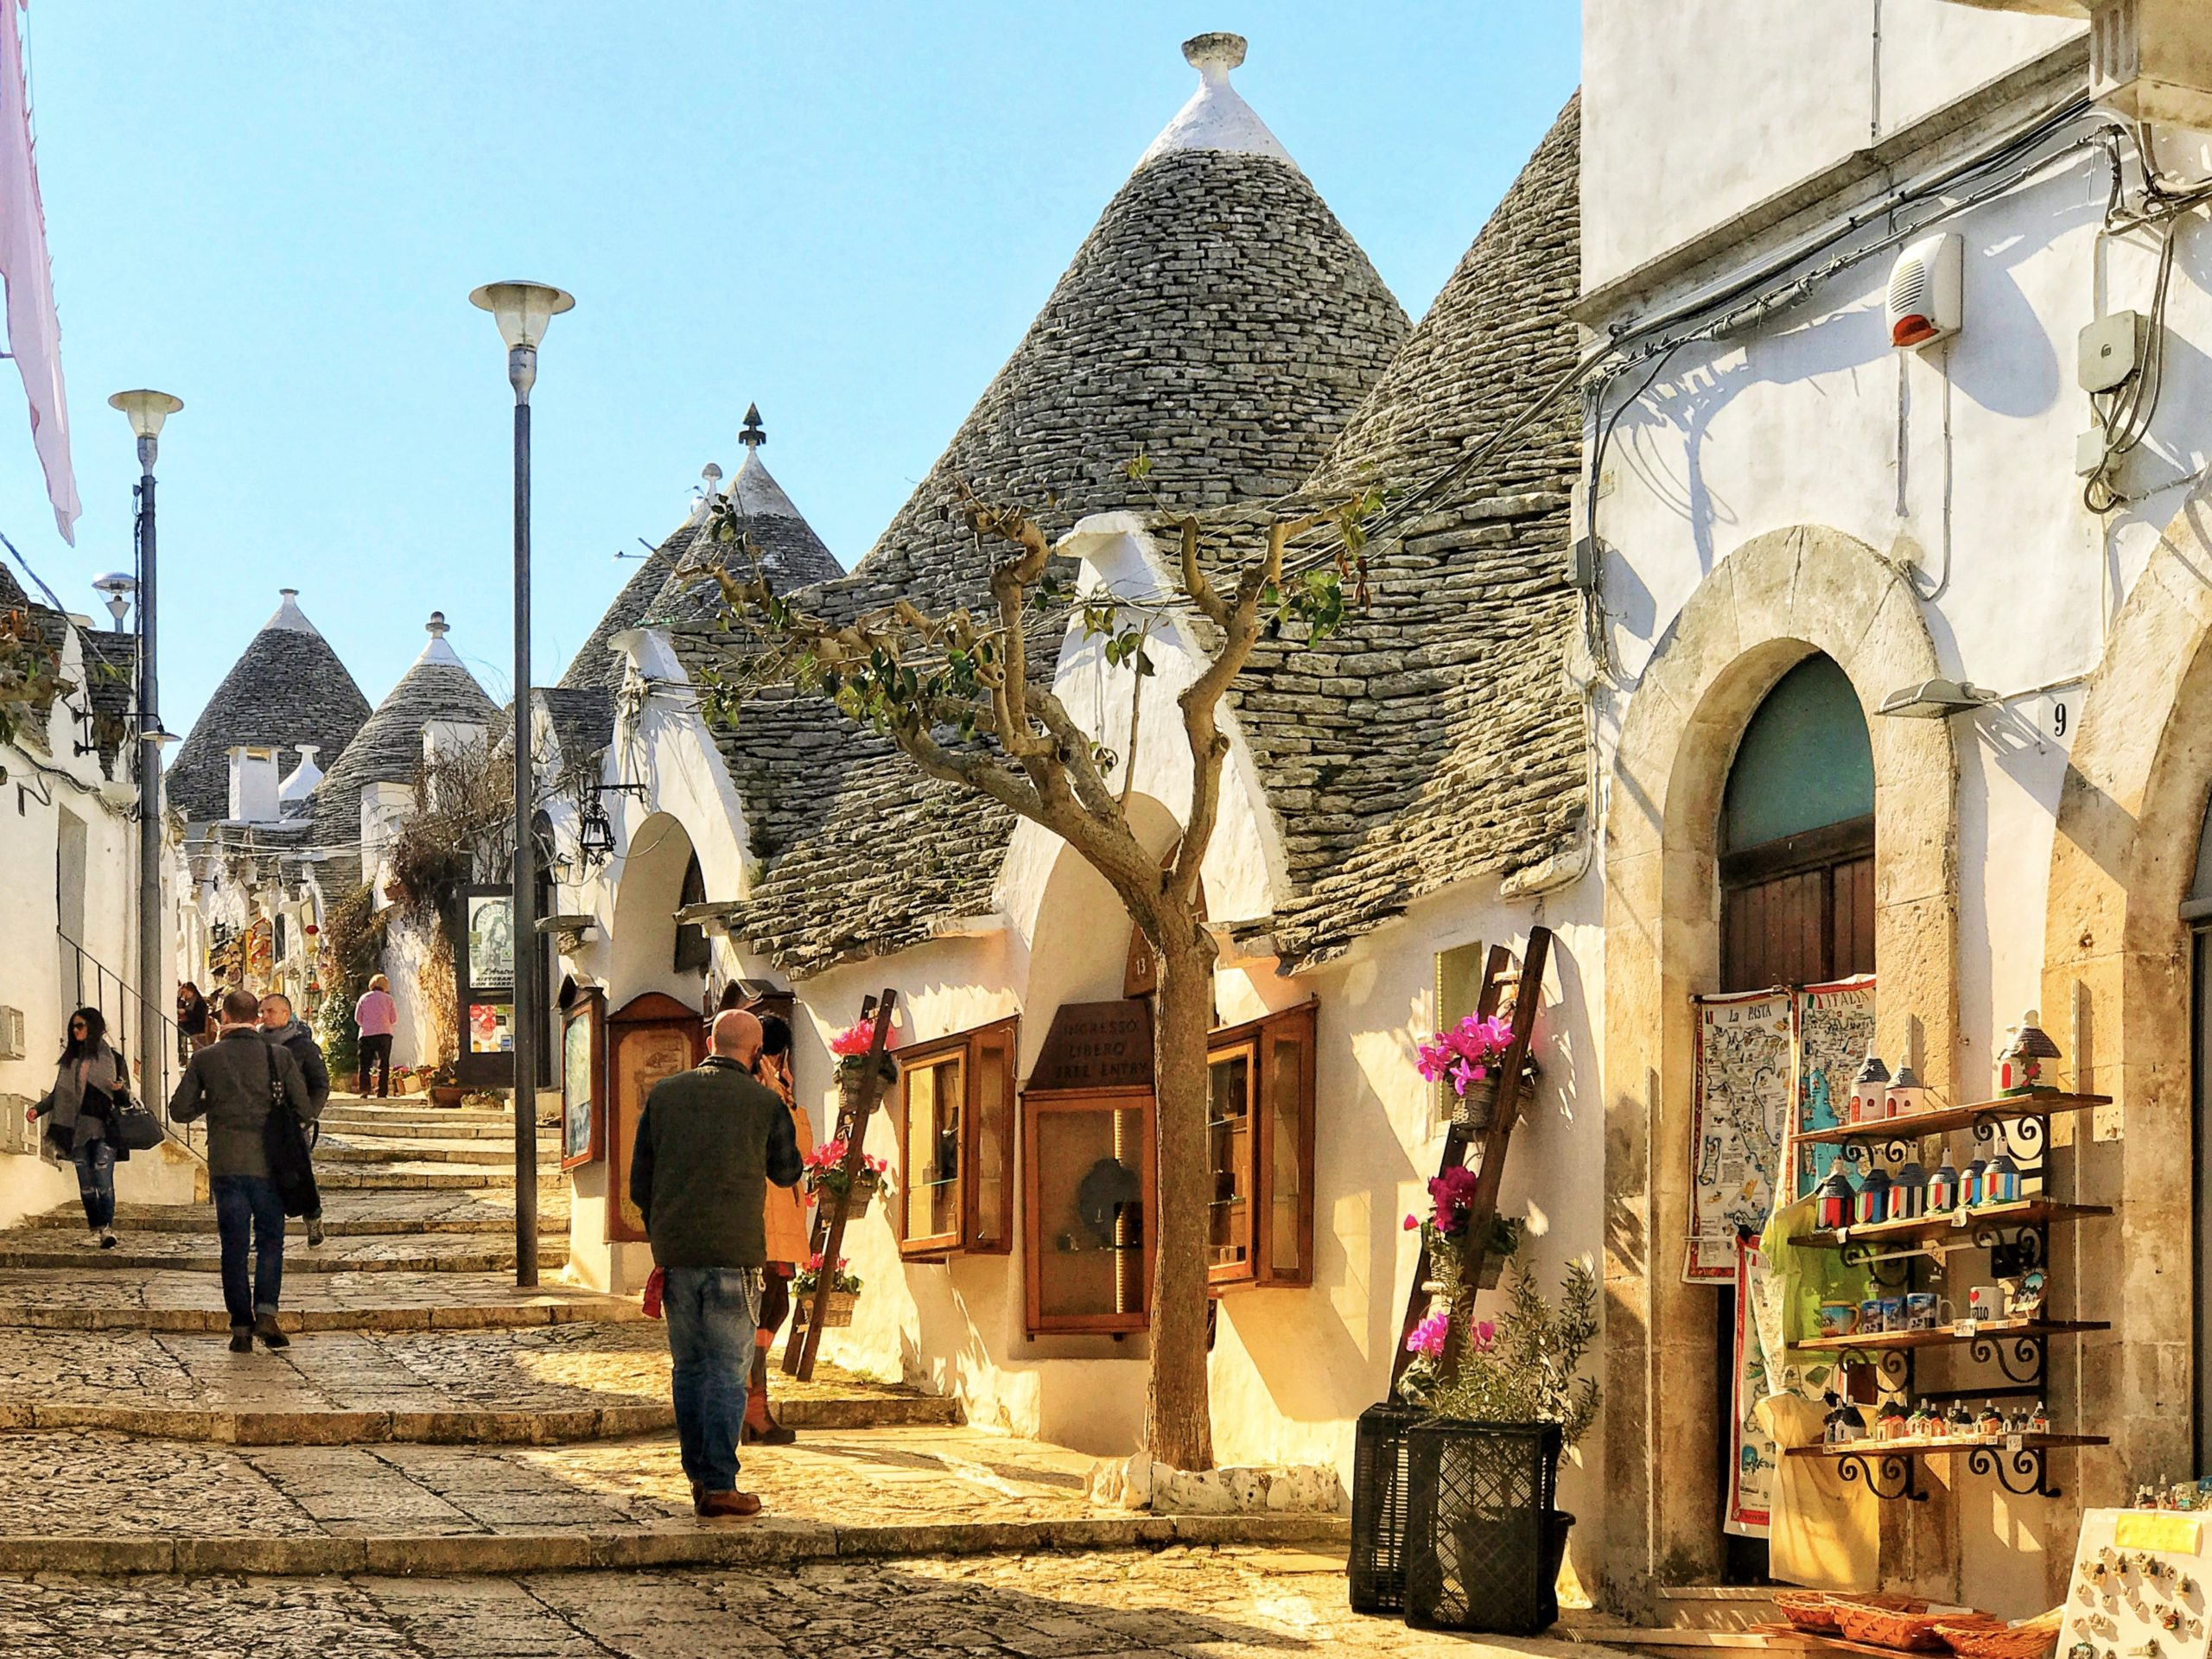 Alberobello is where you find the greatest density of Puglia's trulli - small white buildings with conical stone roofs.